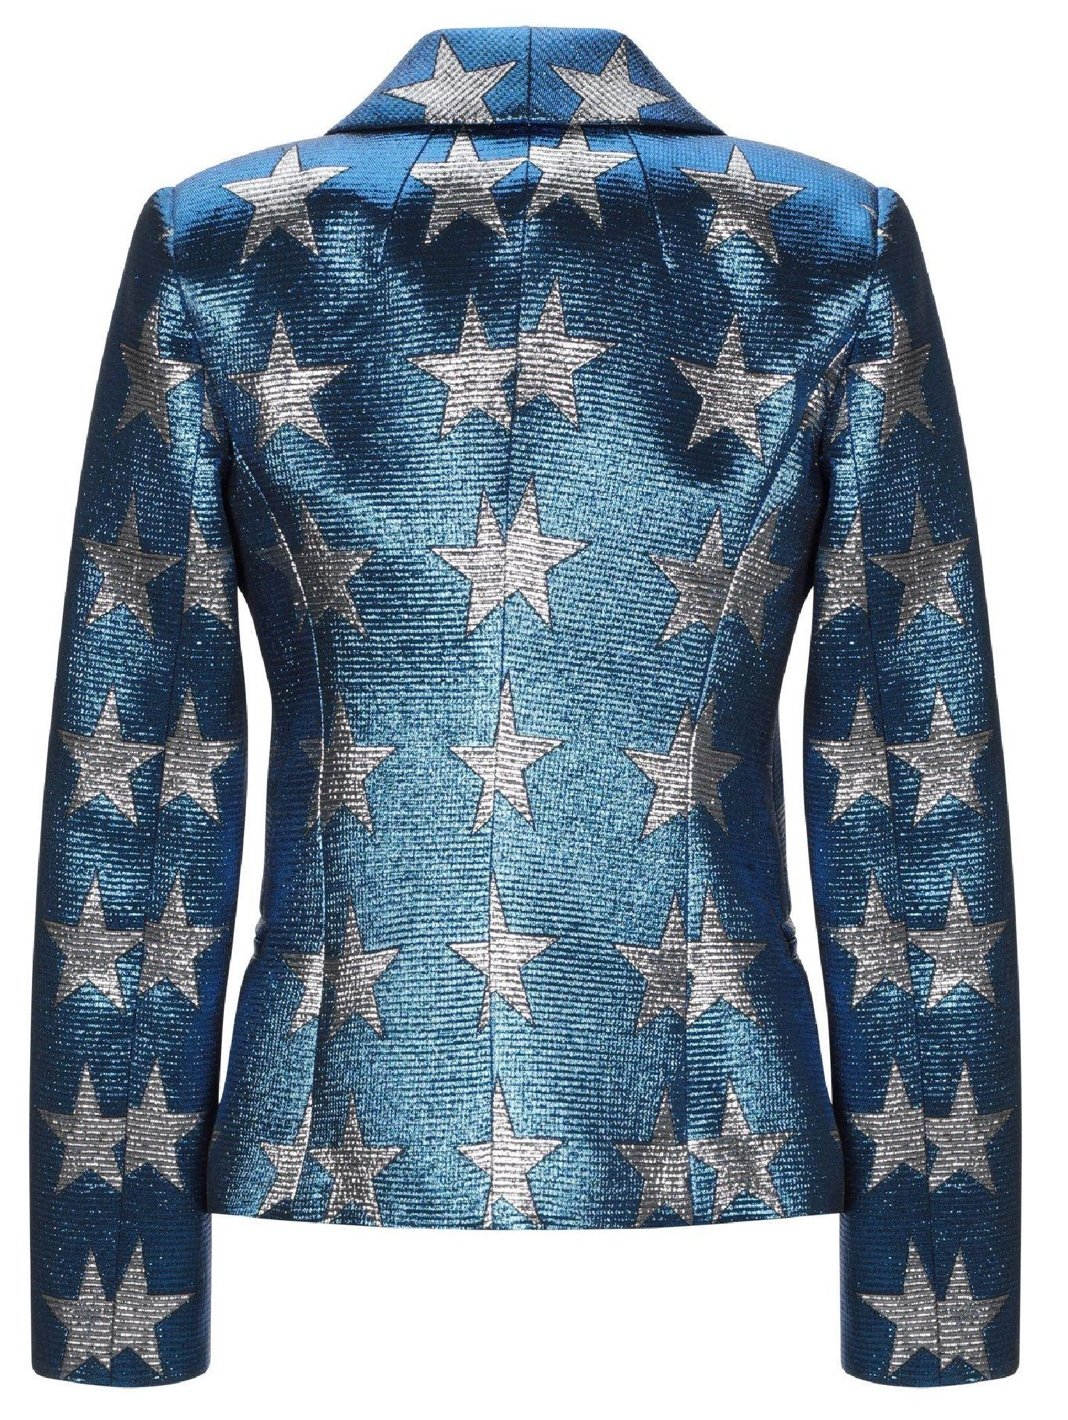 Star Lame Blazer - The Bobby Boga